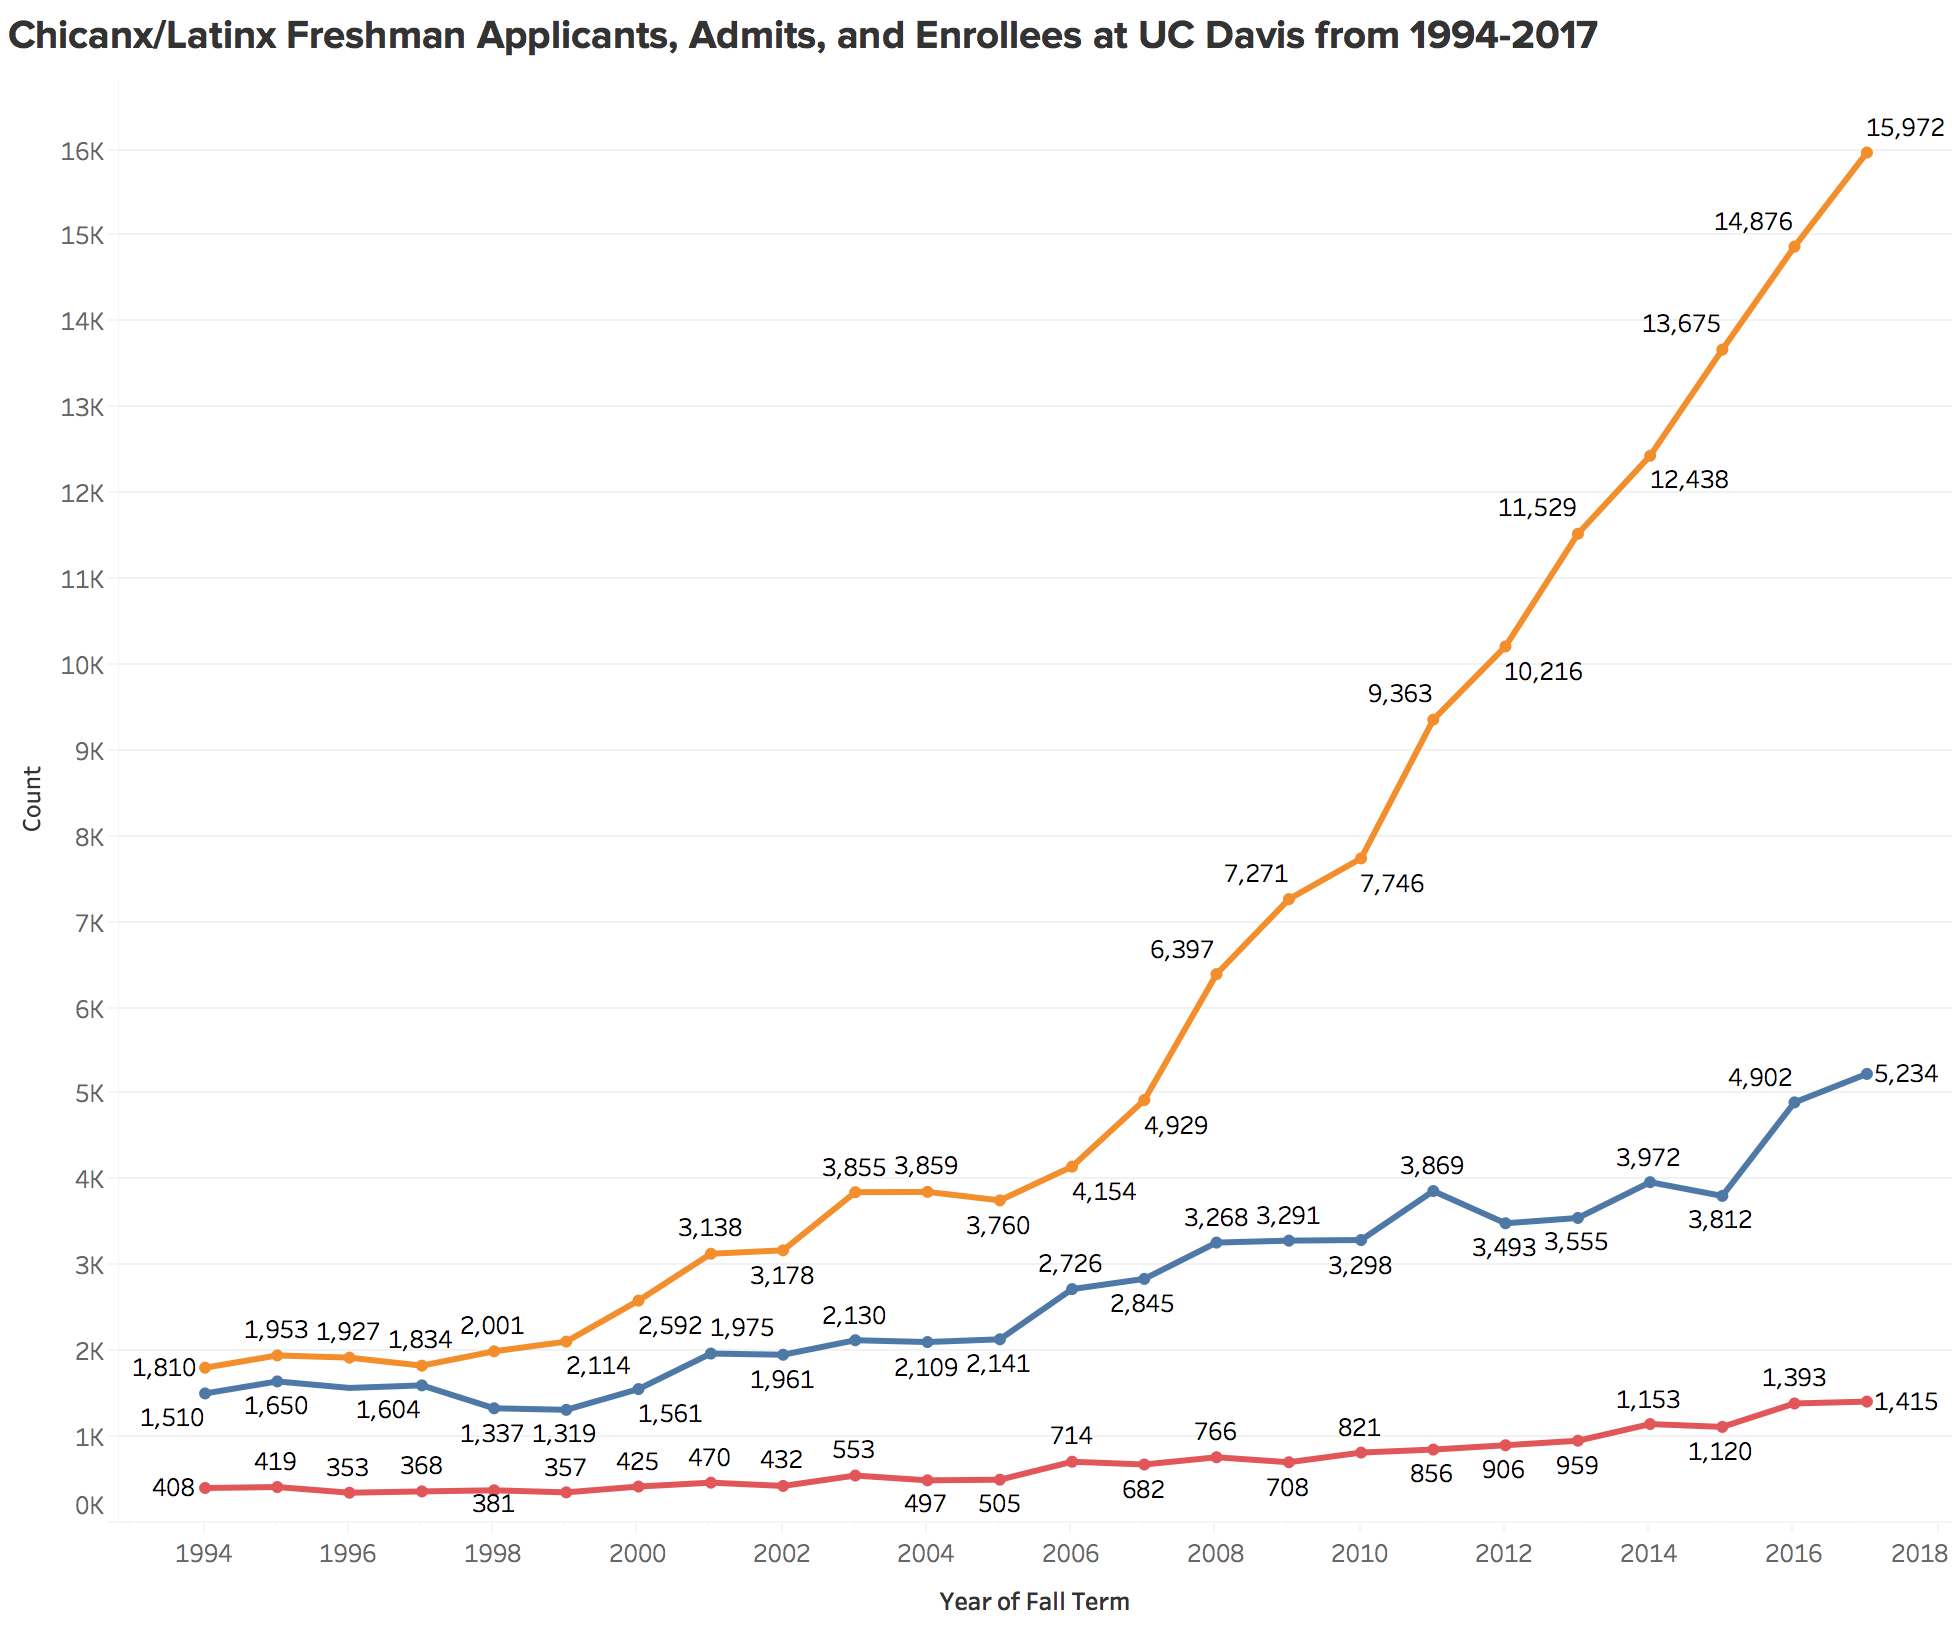 Figure 7. the number of applications from chicanx/latinx students have increased dramatically in the past ten years. Even as applications have increased, the number of admits and enrollees has increased at a much slower pace. source: Uc Davis student information systems